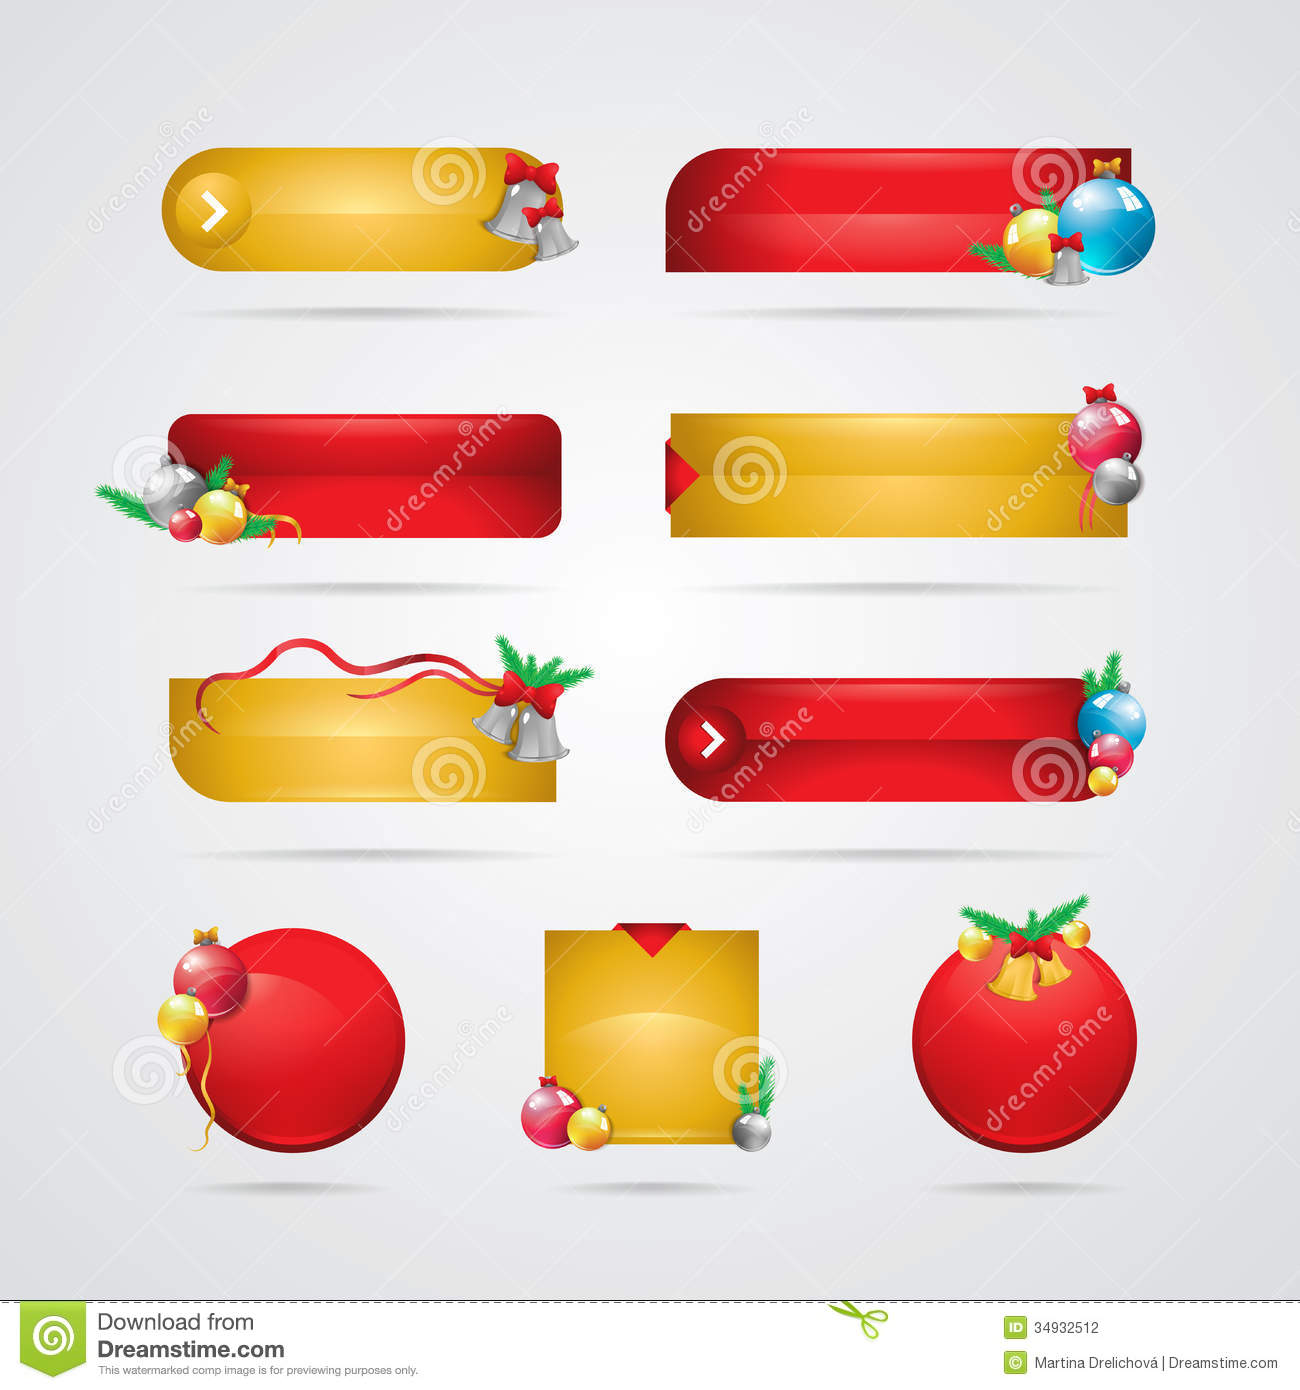 download christmas buttons stock vector illustration of effect 34932512 - Christmas Buttons